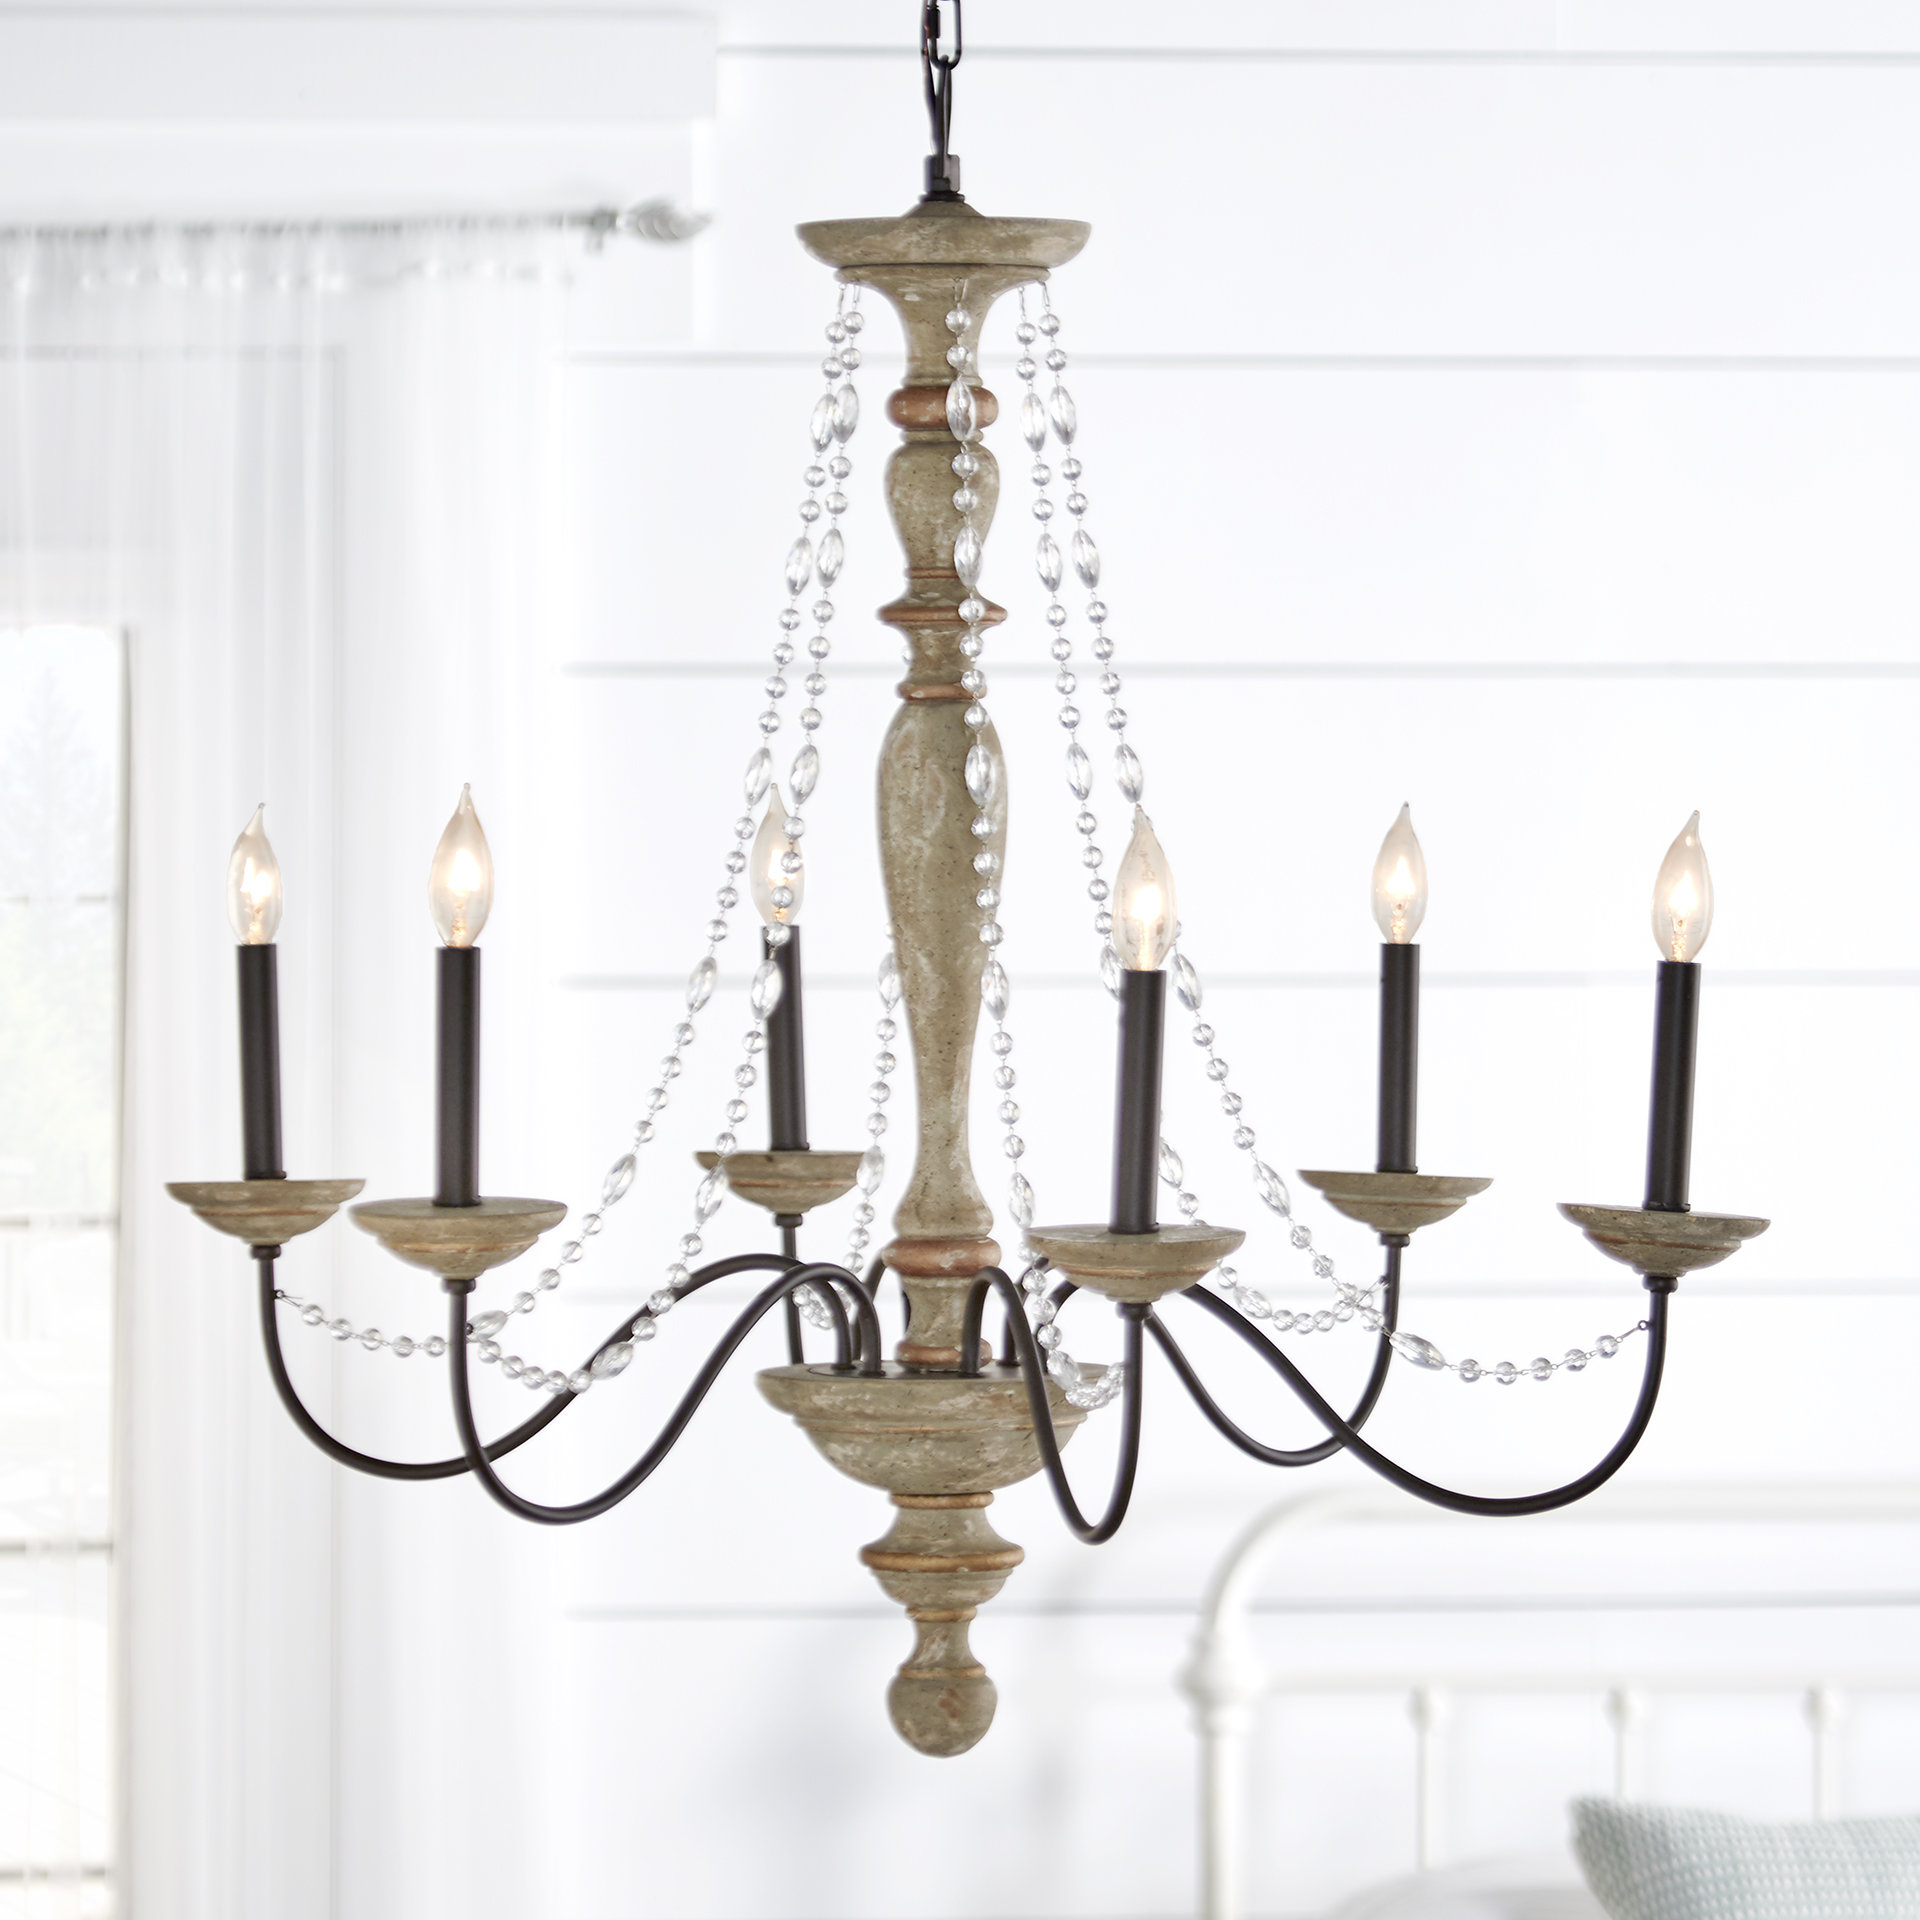 Well Liked Three Posts Brennon 6 Light Candle Style Chandelier Pertaining To Watford 6 Light Candle Style Chandeliers (Gallery 12 of 20)